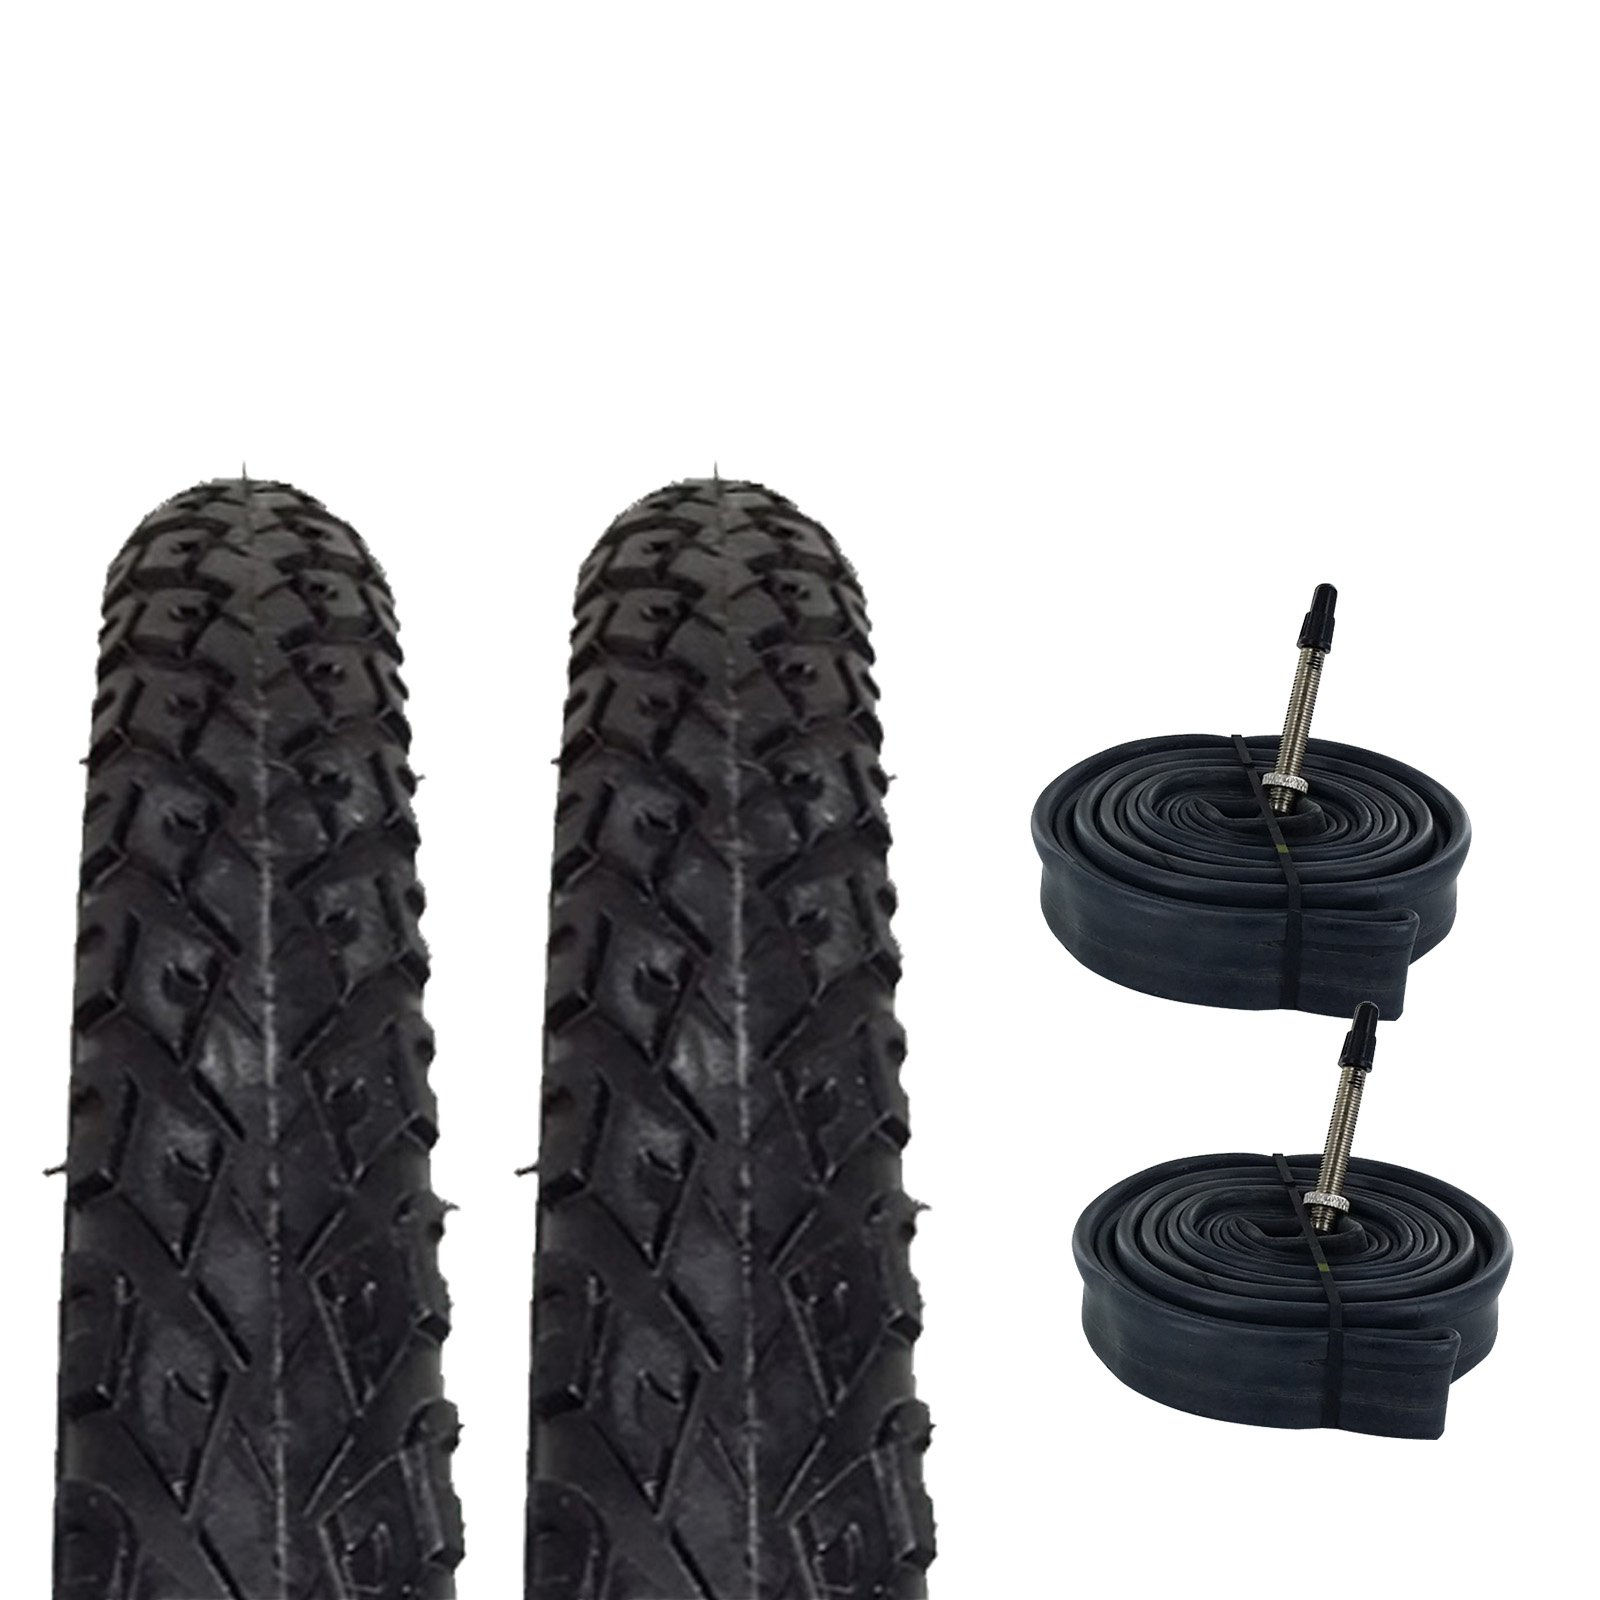 Zol Bundle 2 Pack Z2011 Urban Hybrid Tires and Tube 700x38C, French 48MM Valve by Zol